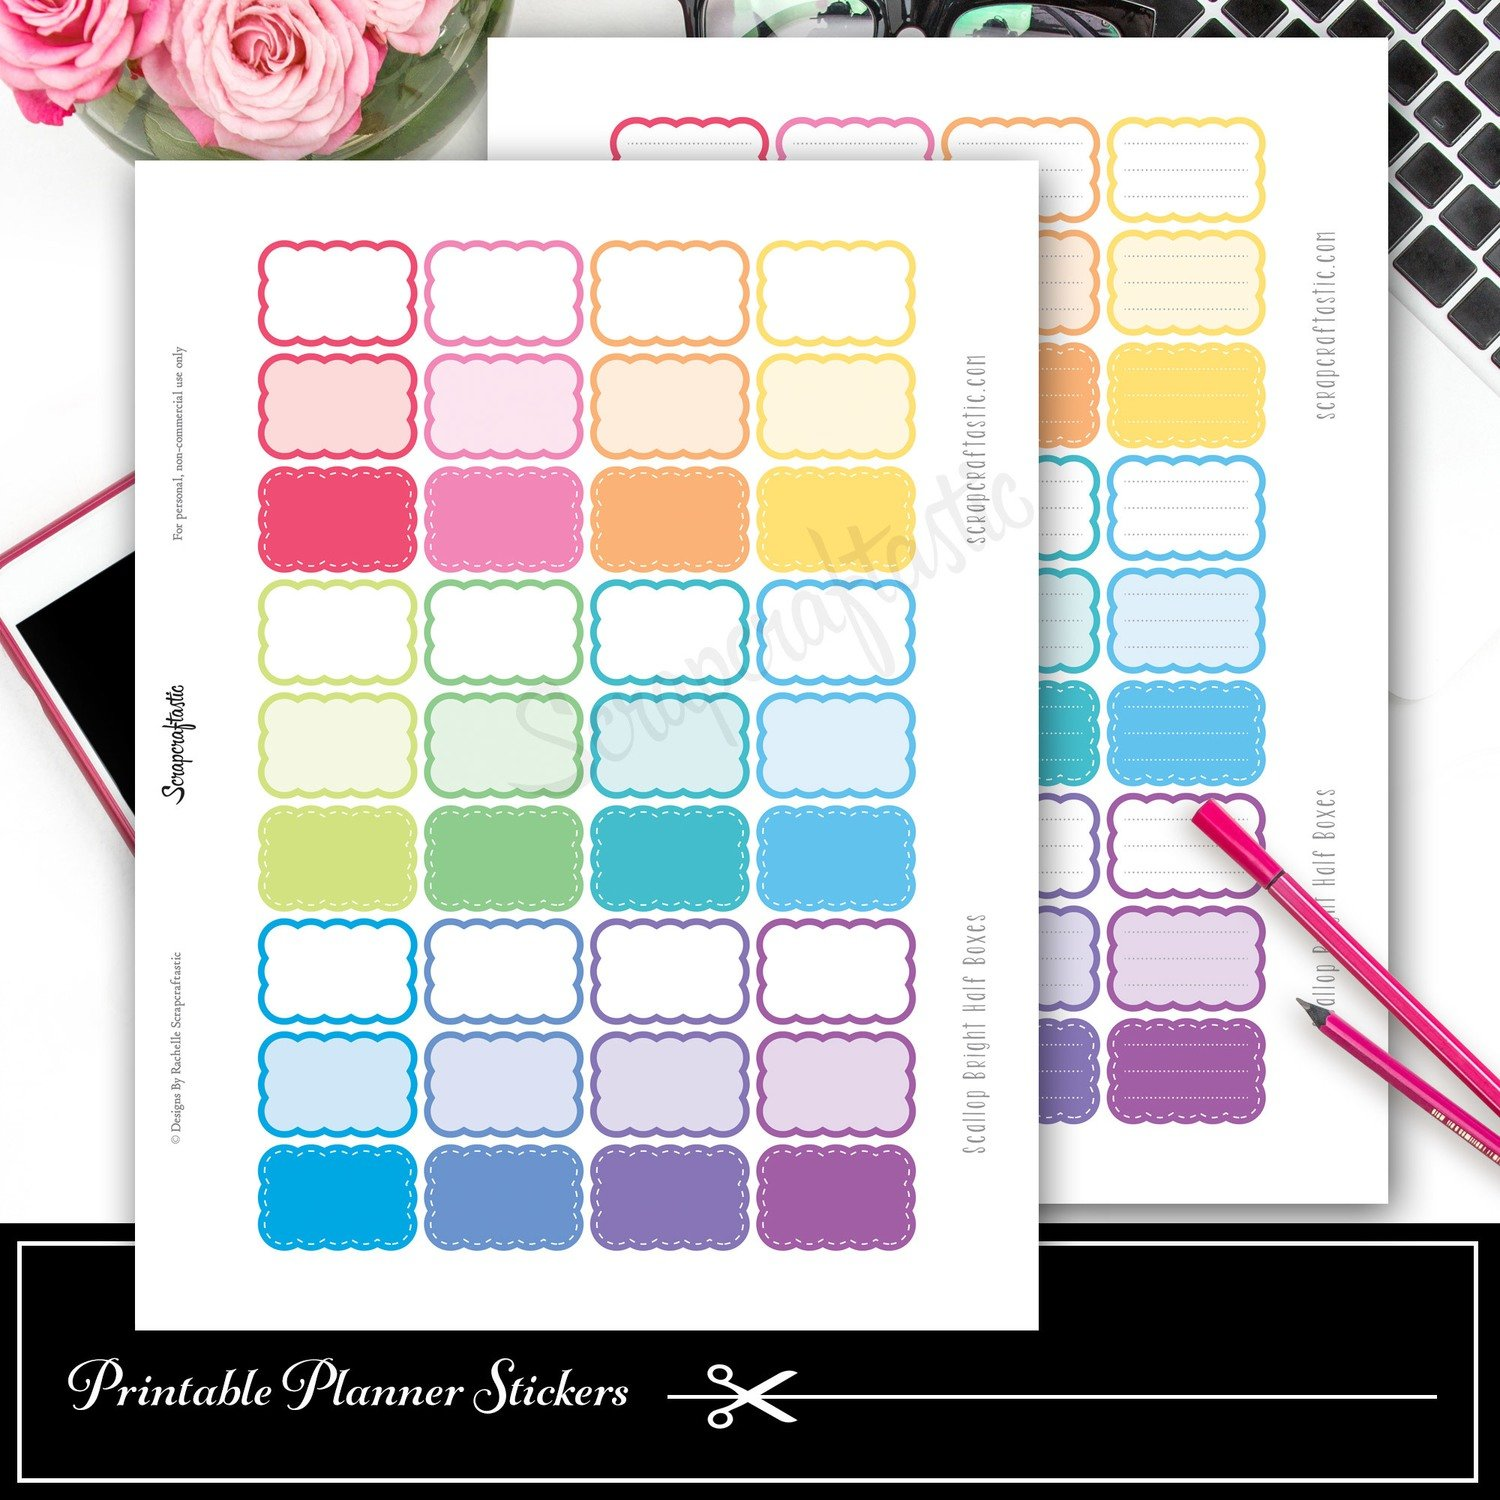 Scallop Brights Variety Half Box Printable Planner Stickers and Silhouette Cut File